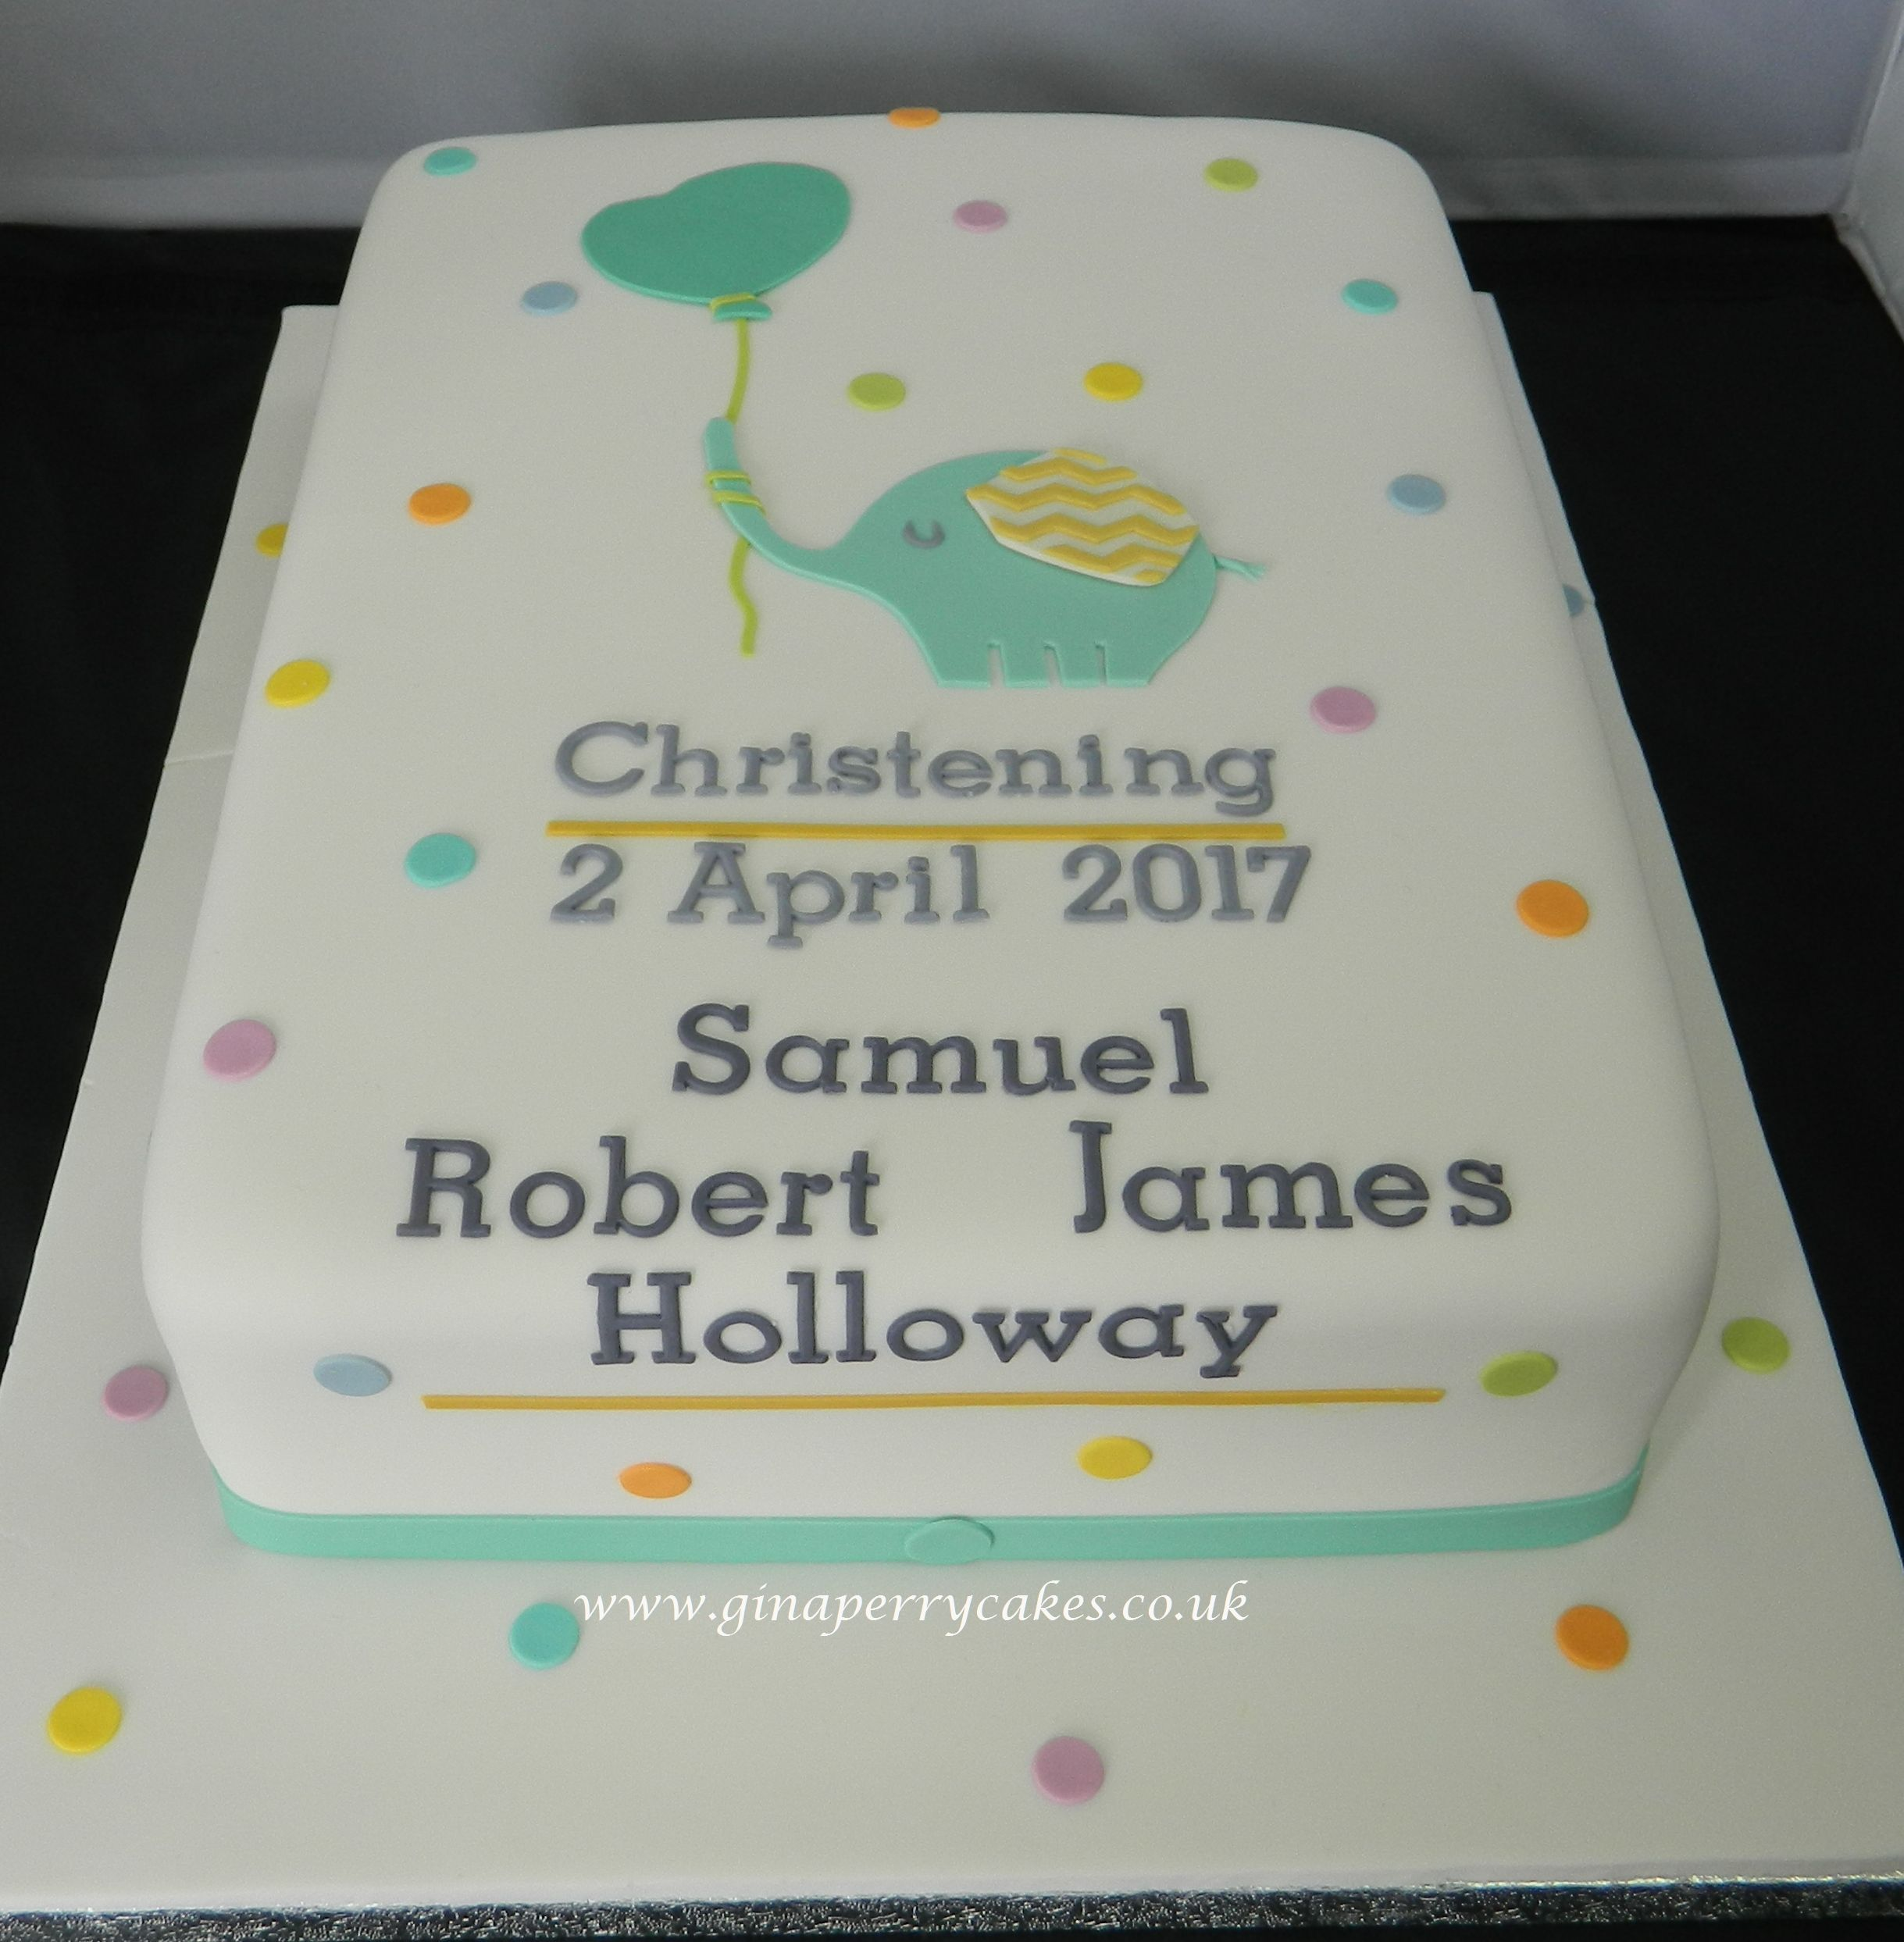 Invitation used for the Christening Cake